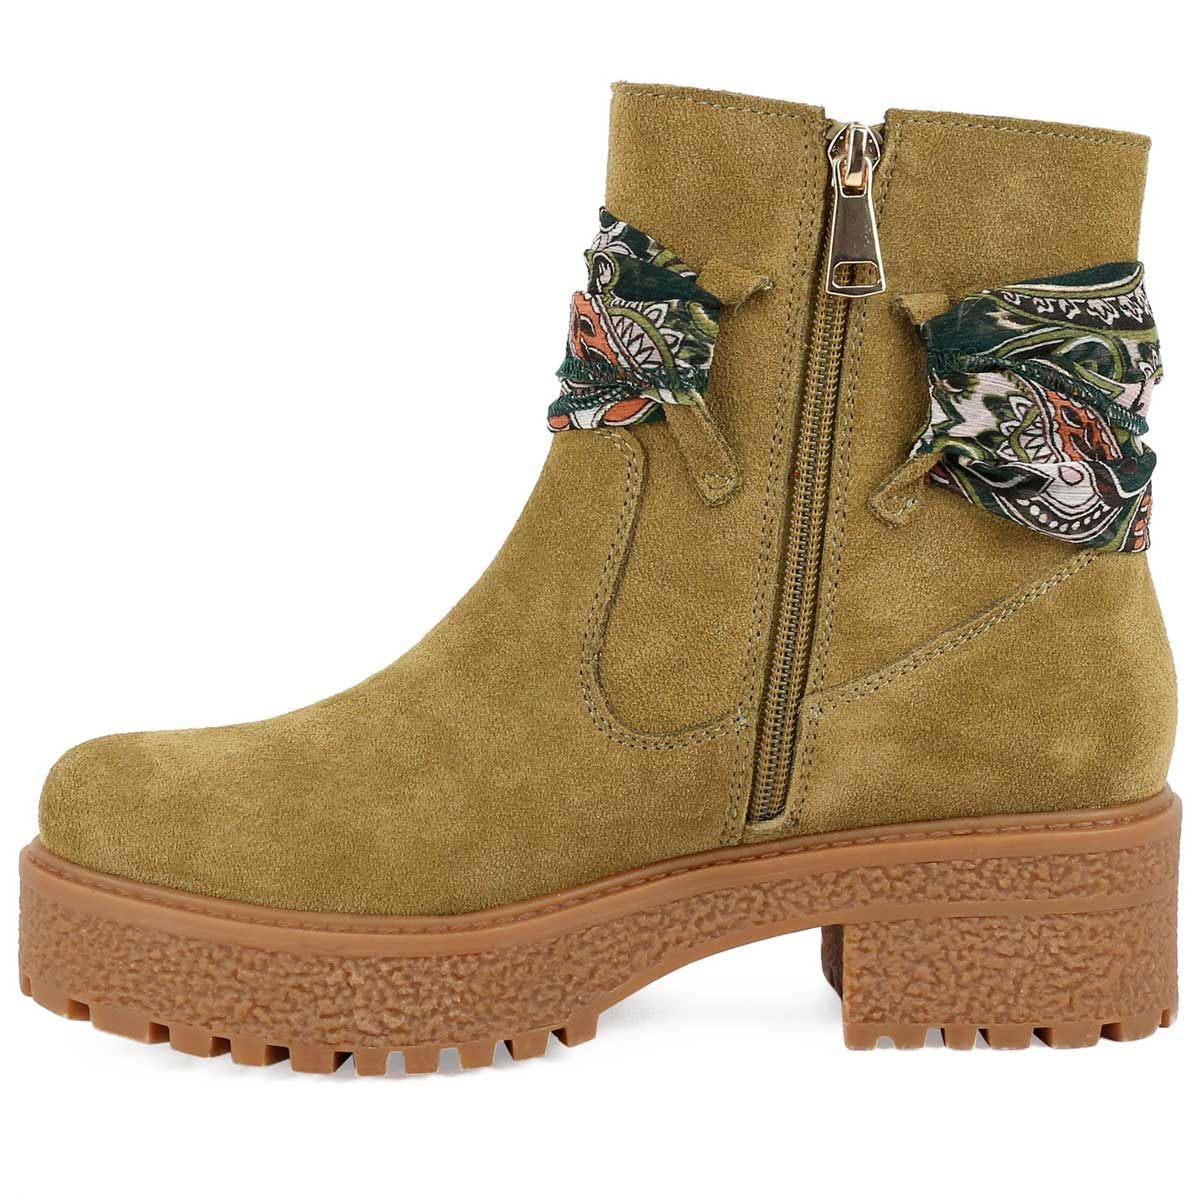 Montevita Scarf Tie Ankle Boot in Taupe